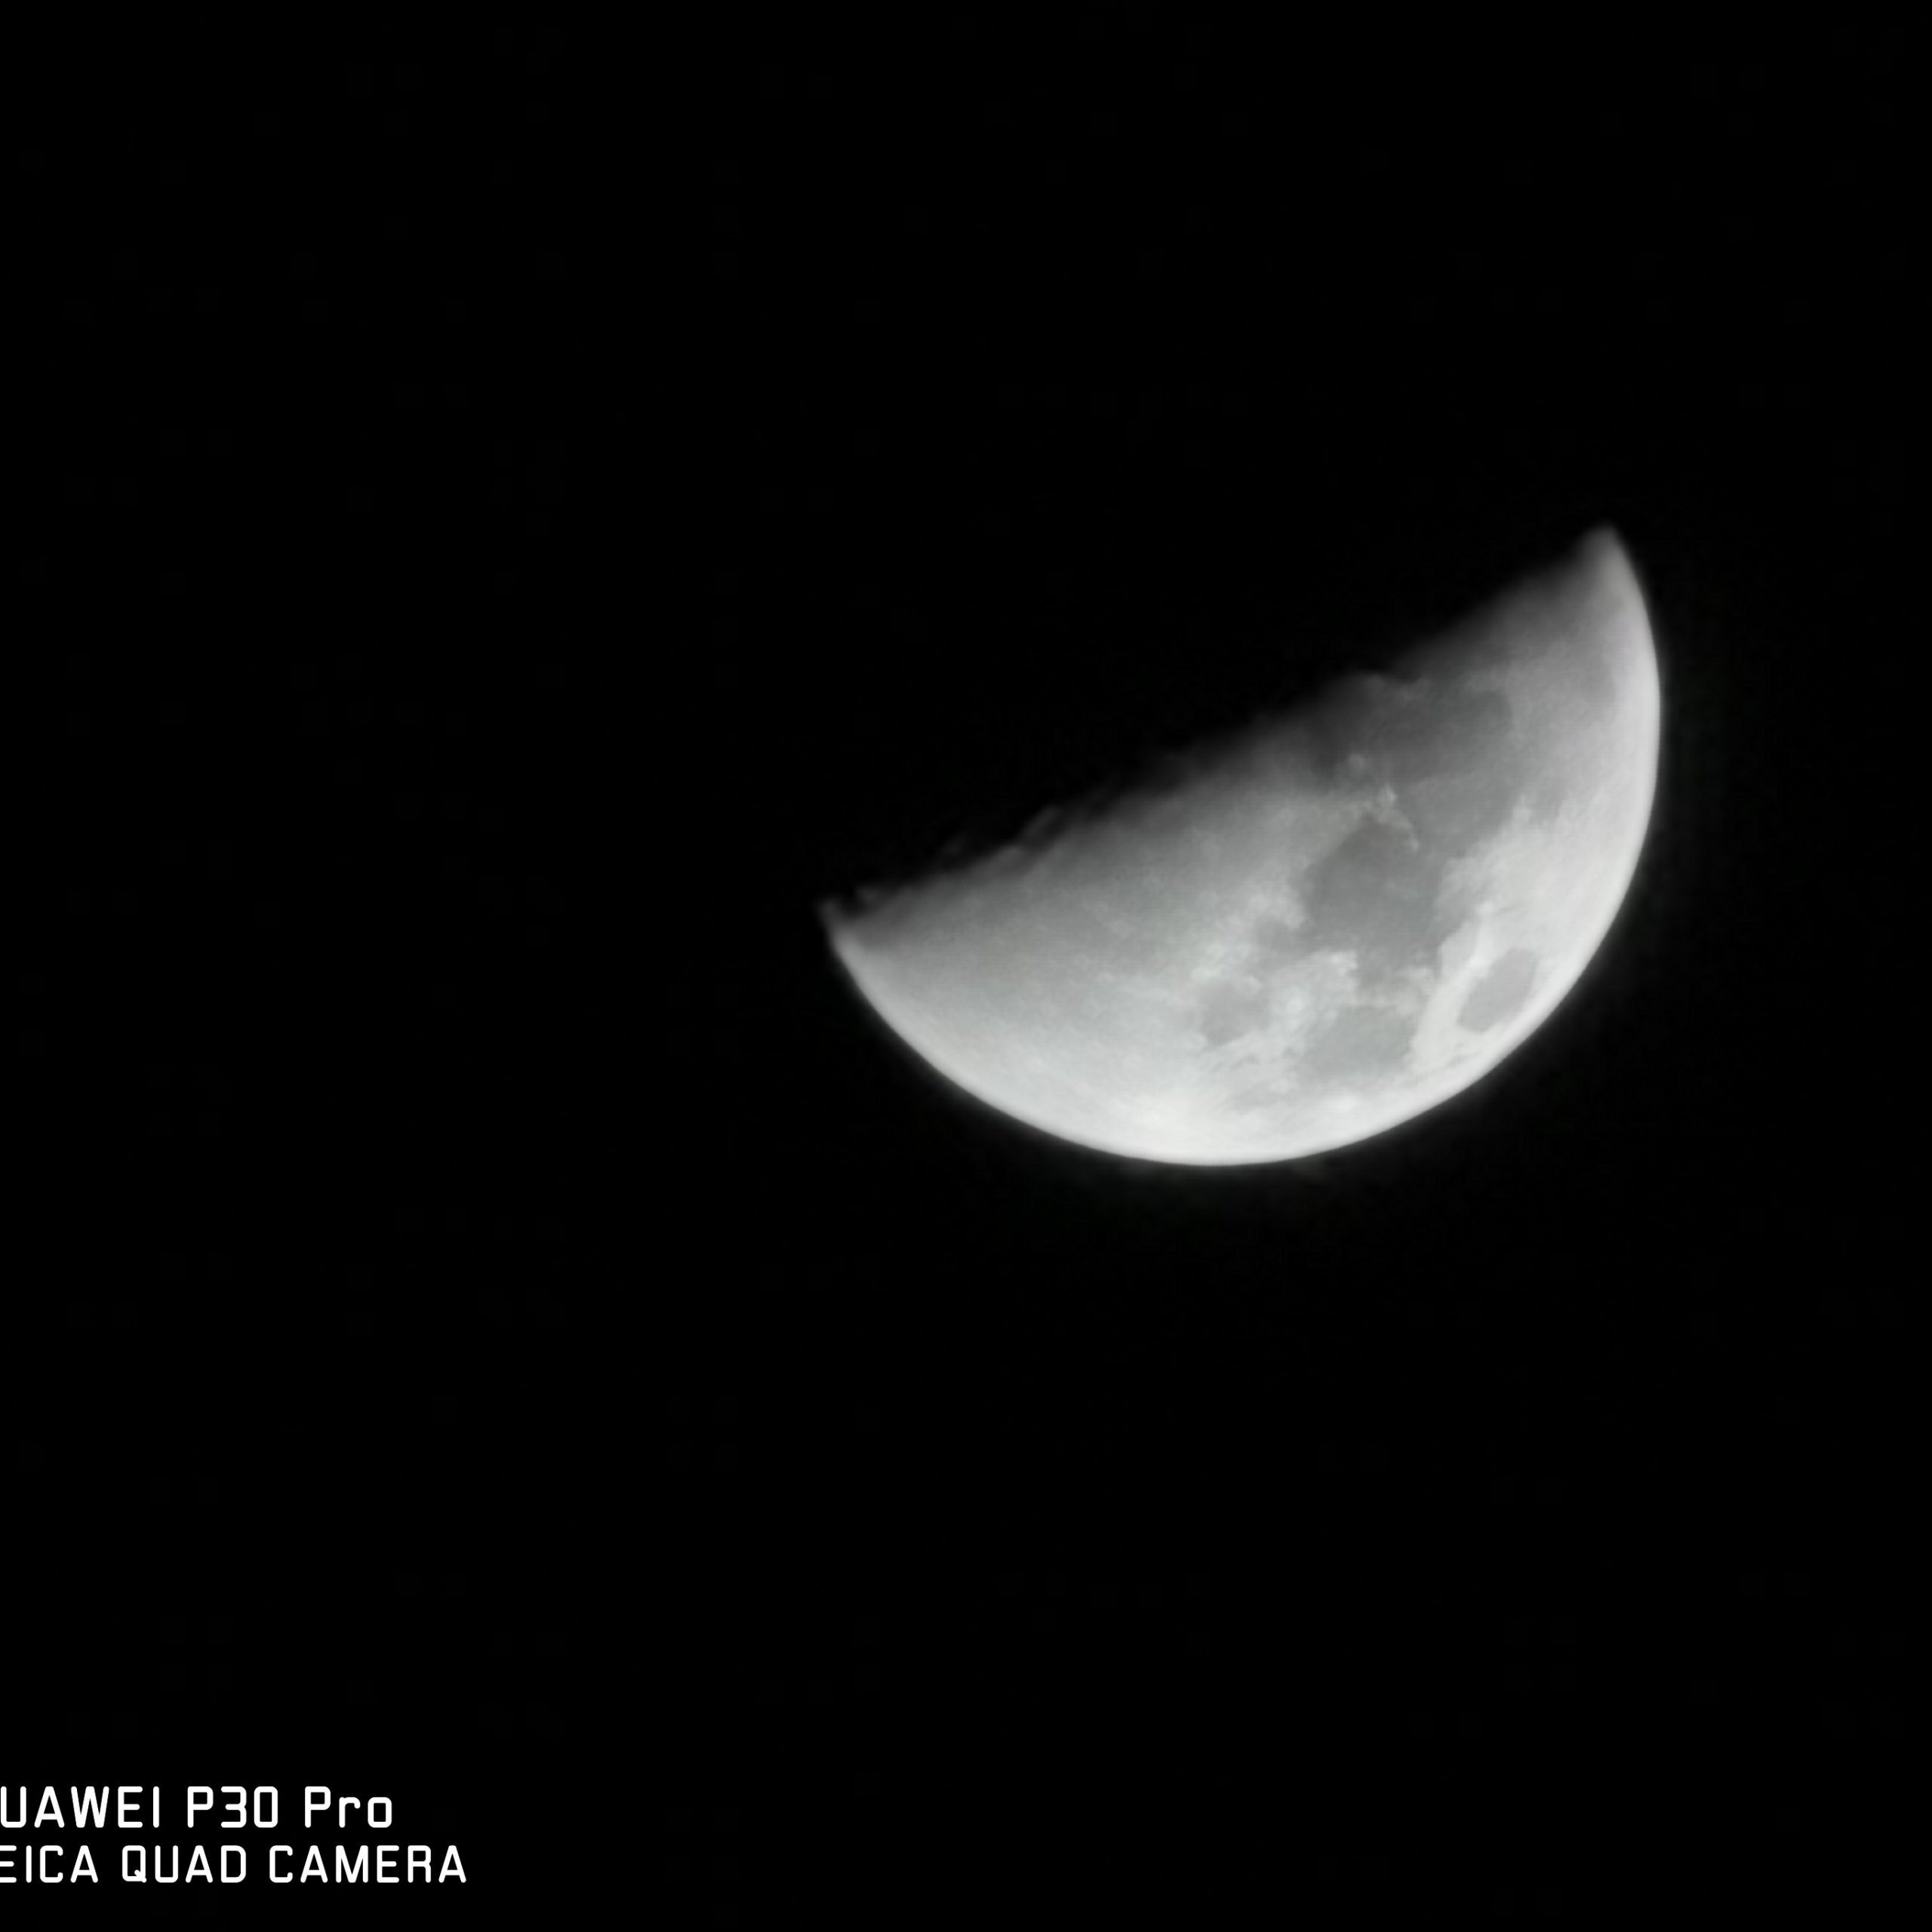 How to: Shoot the Moon with a Huawei P30 Pro